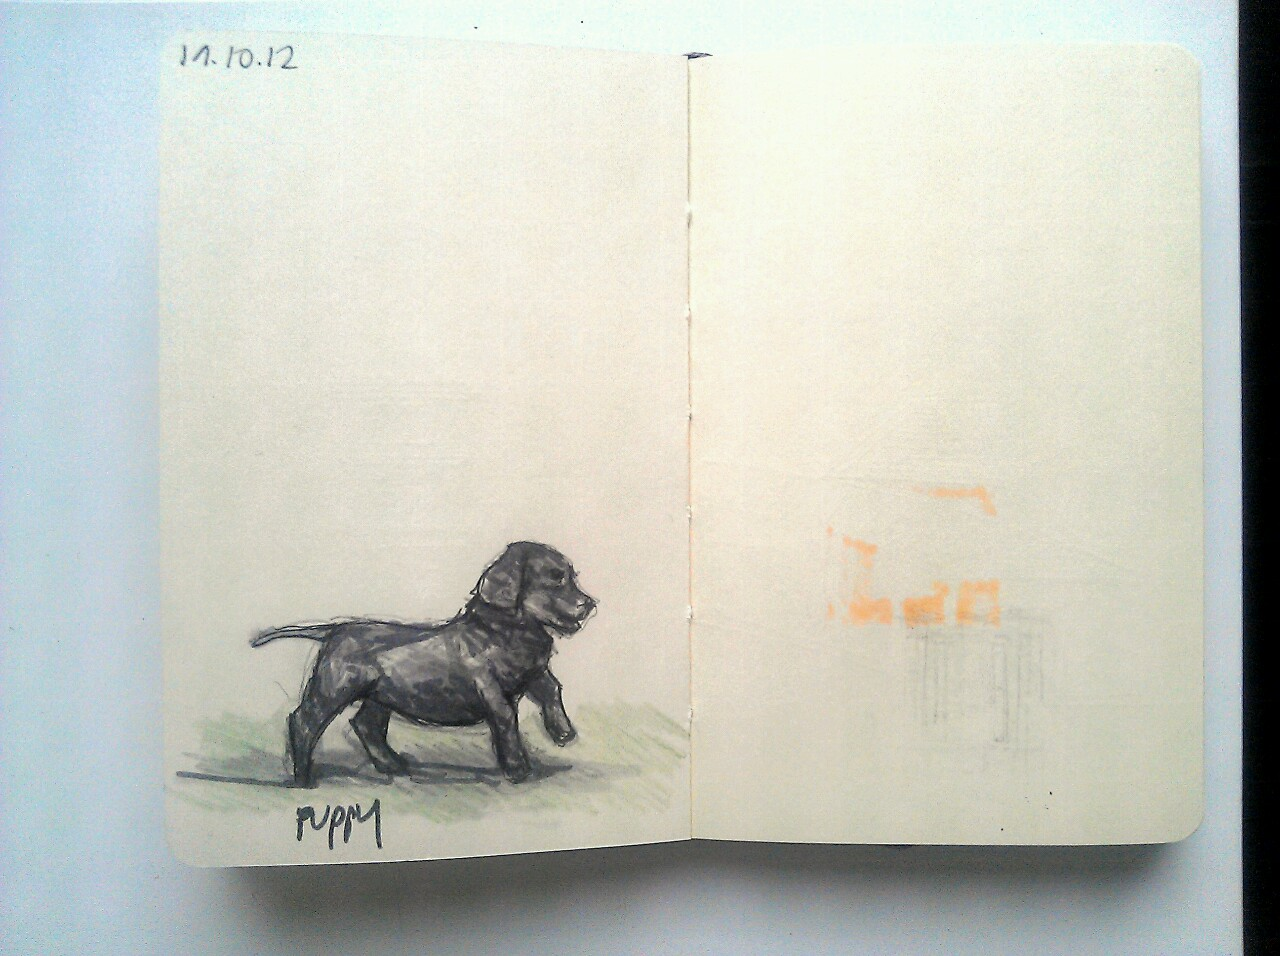 365 drawings later … day 262 … puppy